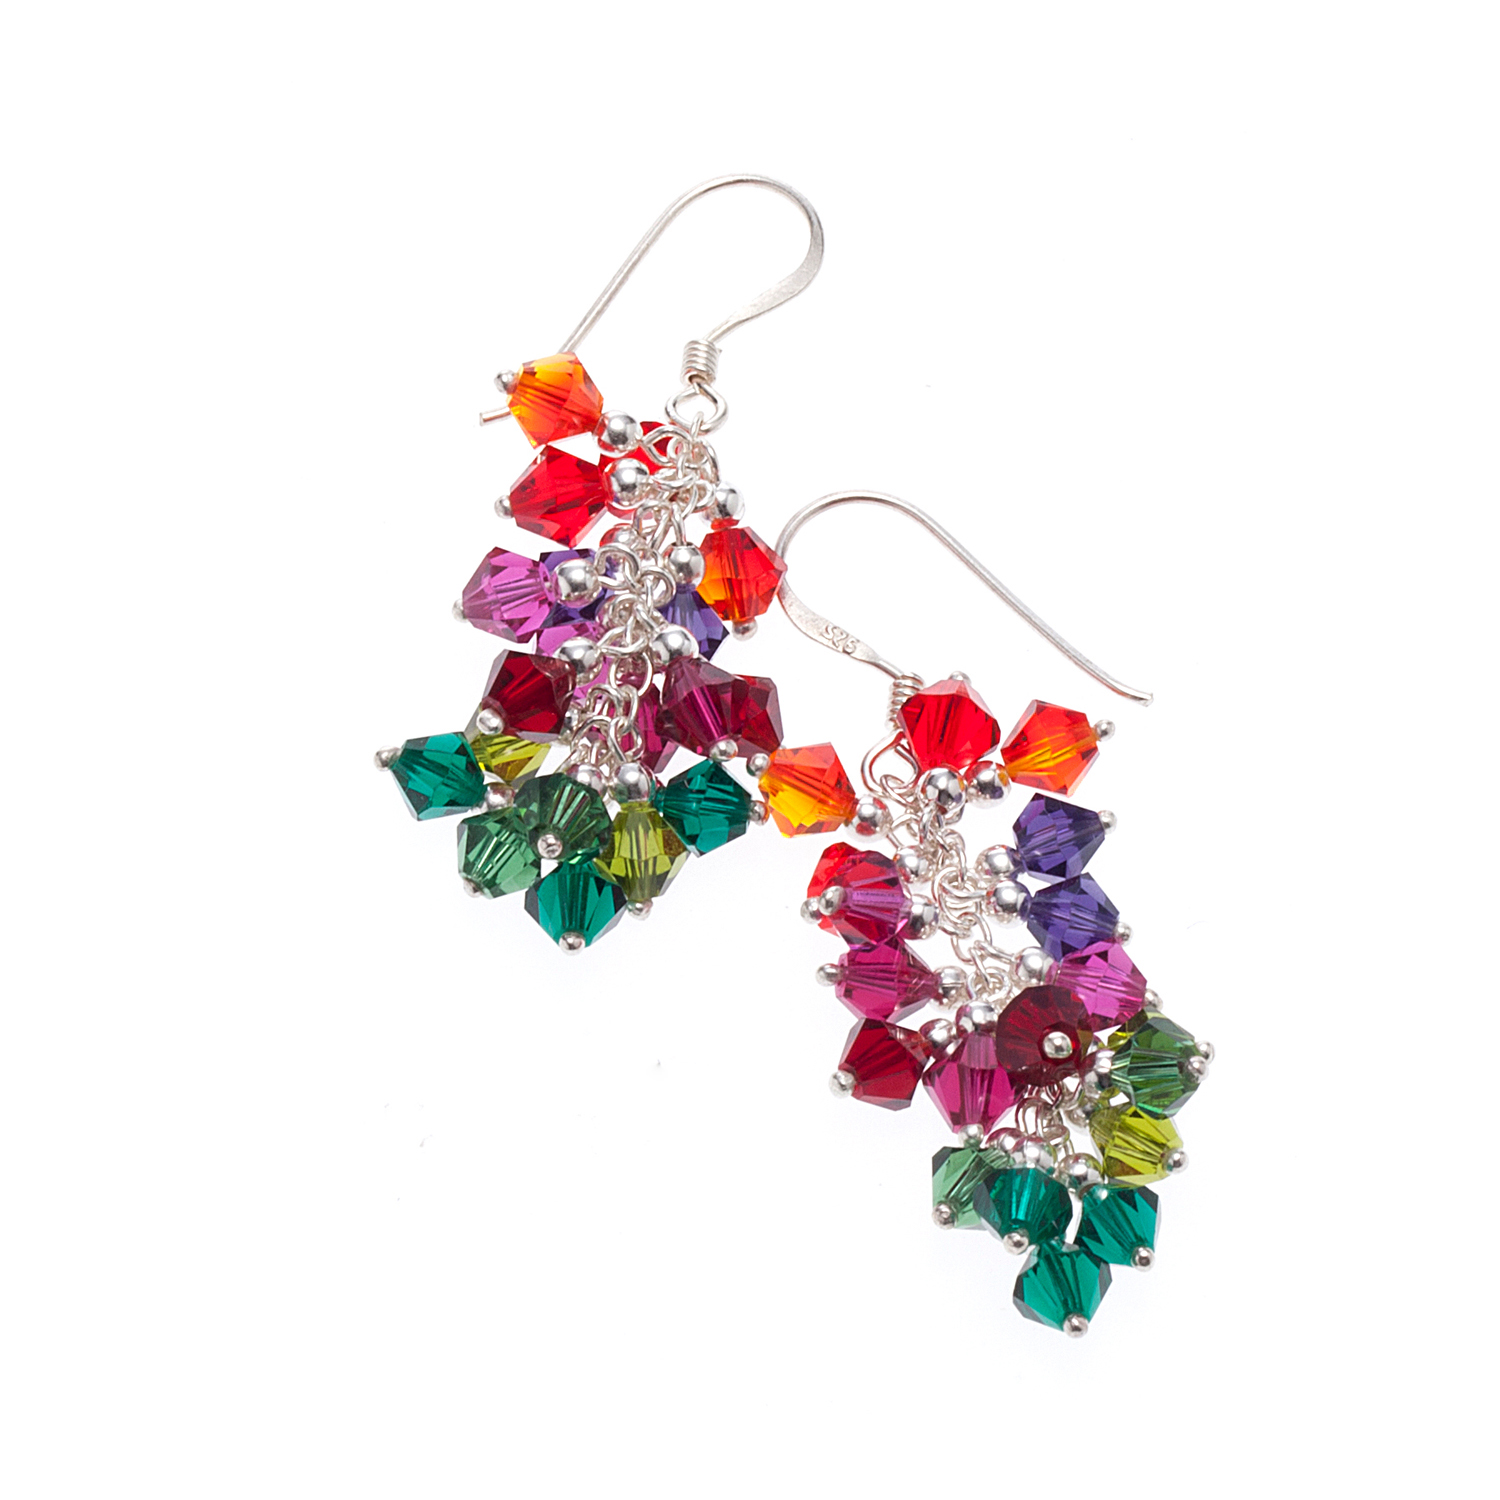 925 Sterling Silver Multi-Colored Cluster Faceted Genuine Swarovski Crystal Dangle Earrings